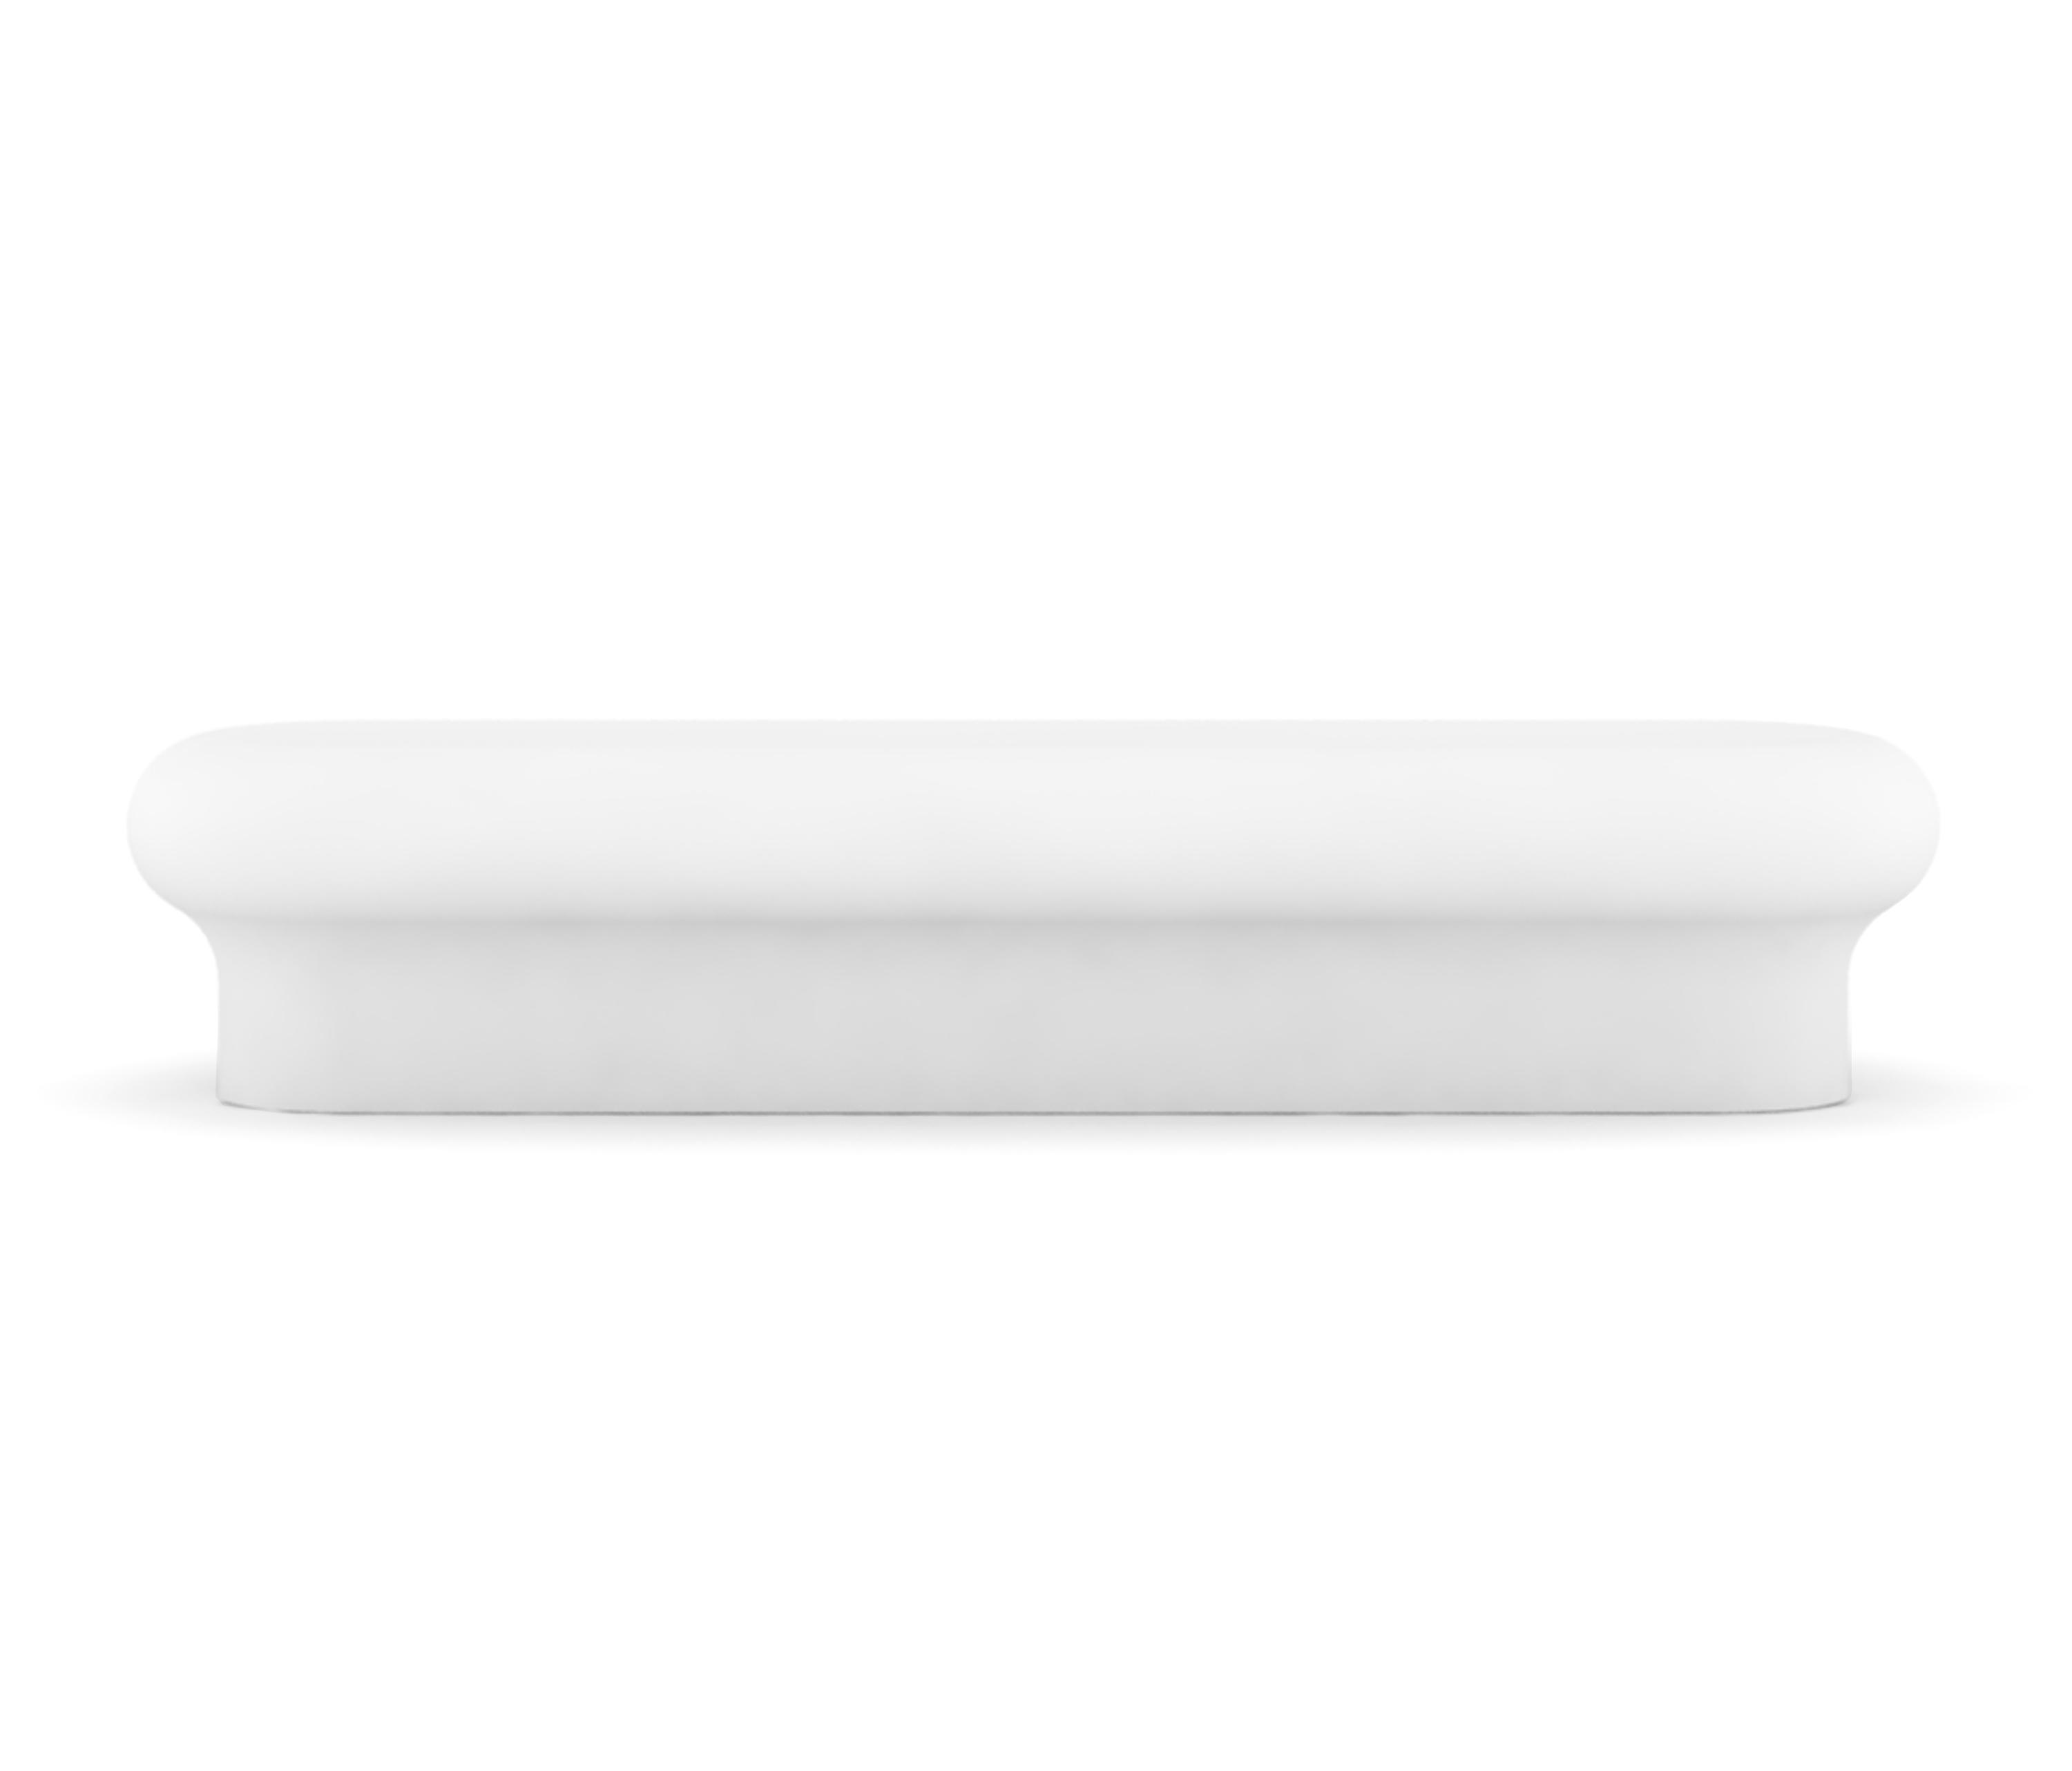 product leah overstock white garden christopher home benches seat knight bench today shipping free dining